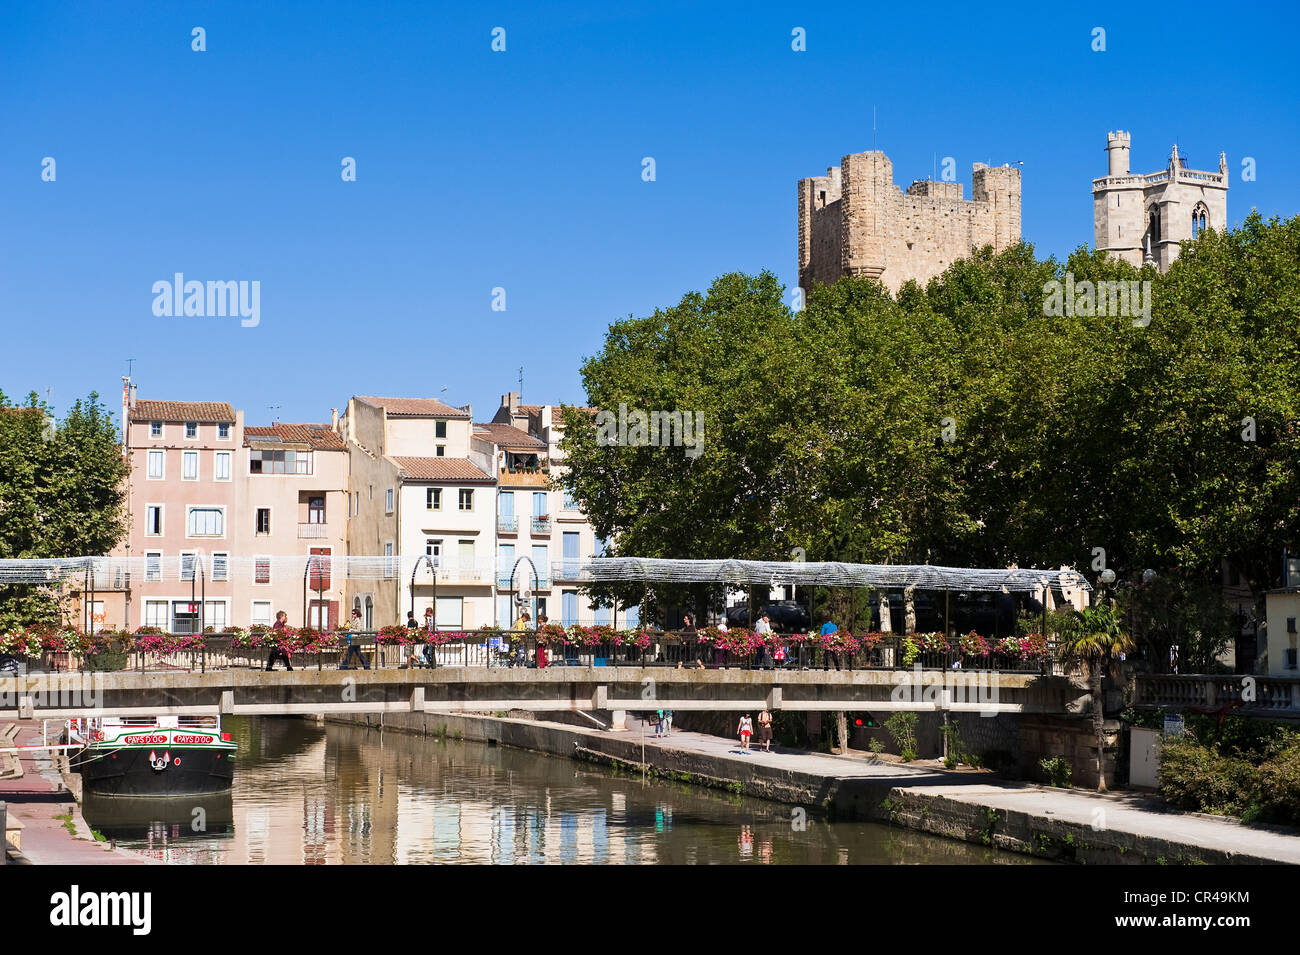 france aude narbonne canal de la robine unesco world heritage stock photo royalty free image. Black Bedroom Furniture Sets. Home Design Ideas